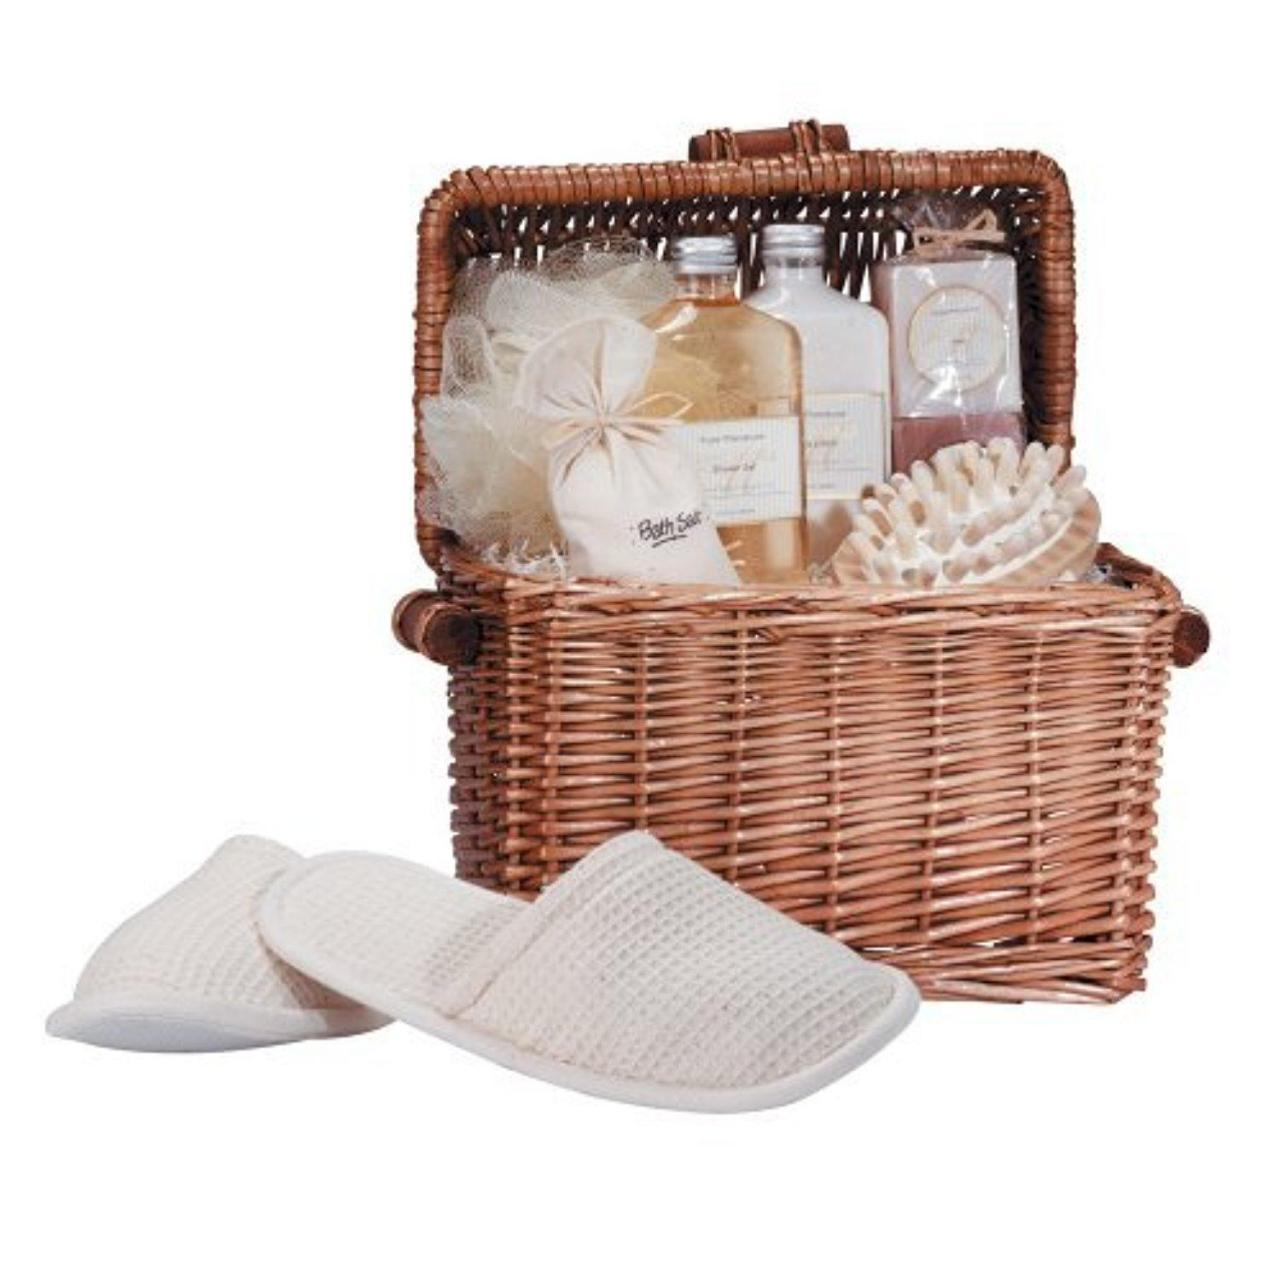 China VERDUGO GIFT Spa-In-A-Basket by VERDUGO GIFT wholesale